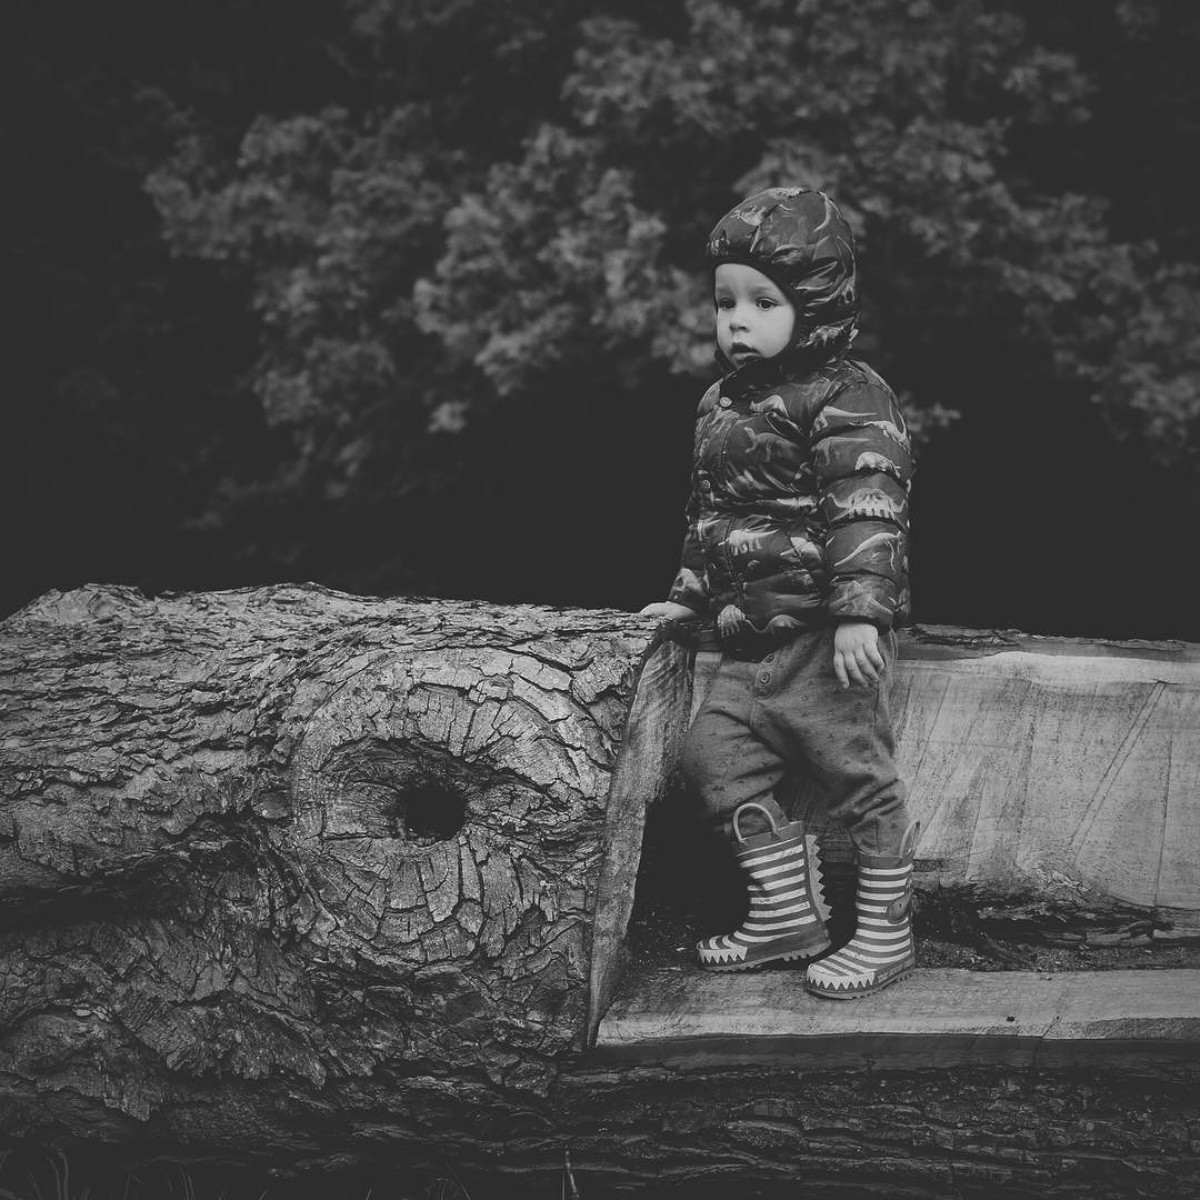 Our month in insta-snaps; October 2016 - Young toddler boy wearing Next dinosaur puffa jacket standing on broken tree branch at the park